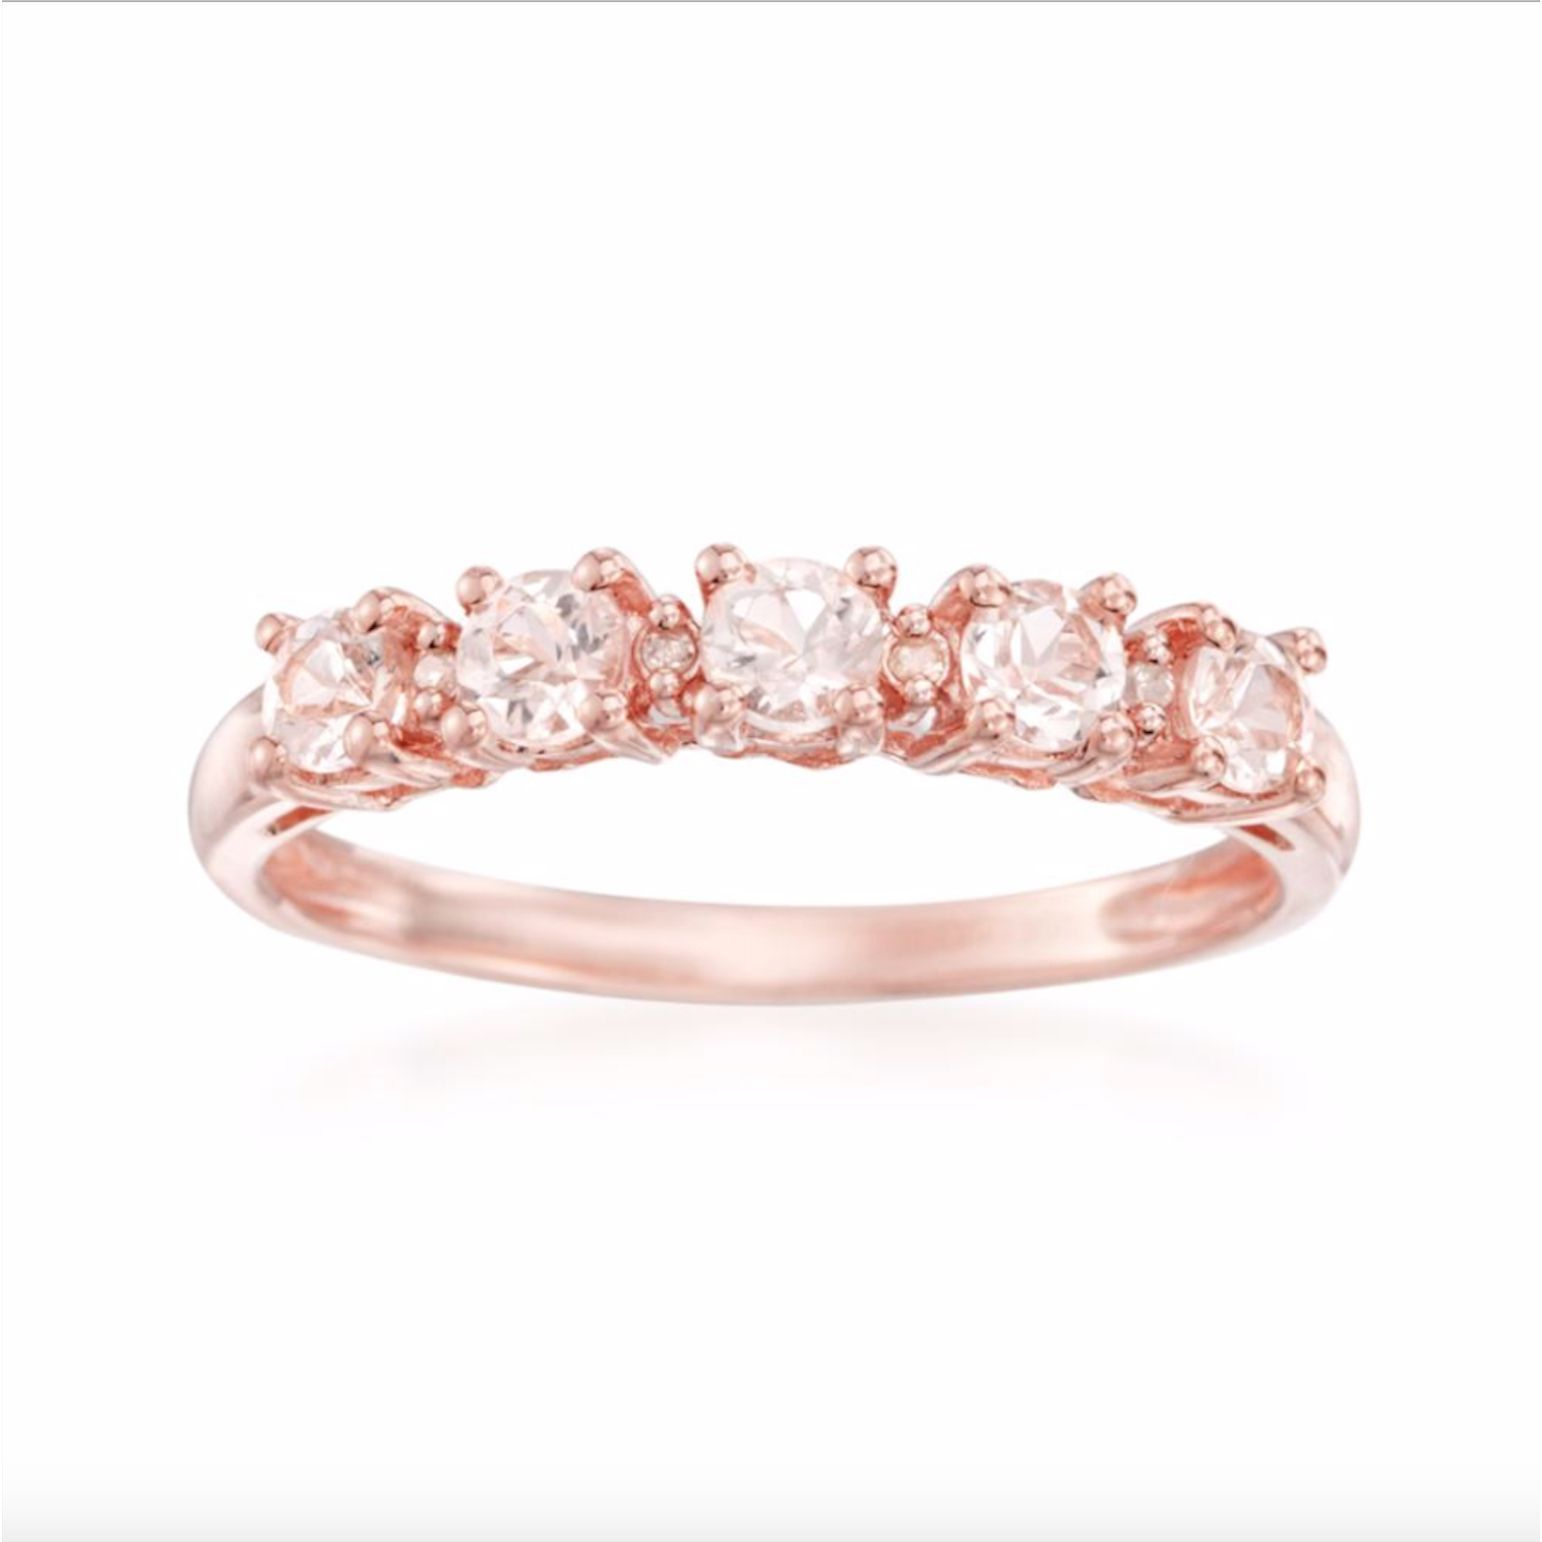 Five Sparkling Morganite Gemstones Are Set Along The Face Of The For Best And Newest Simple Sparkling Band Rings (Gallery 16 of 25)